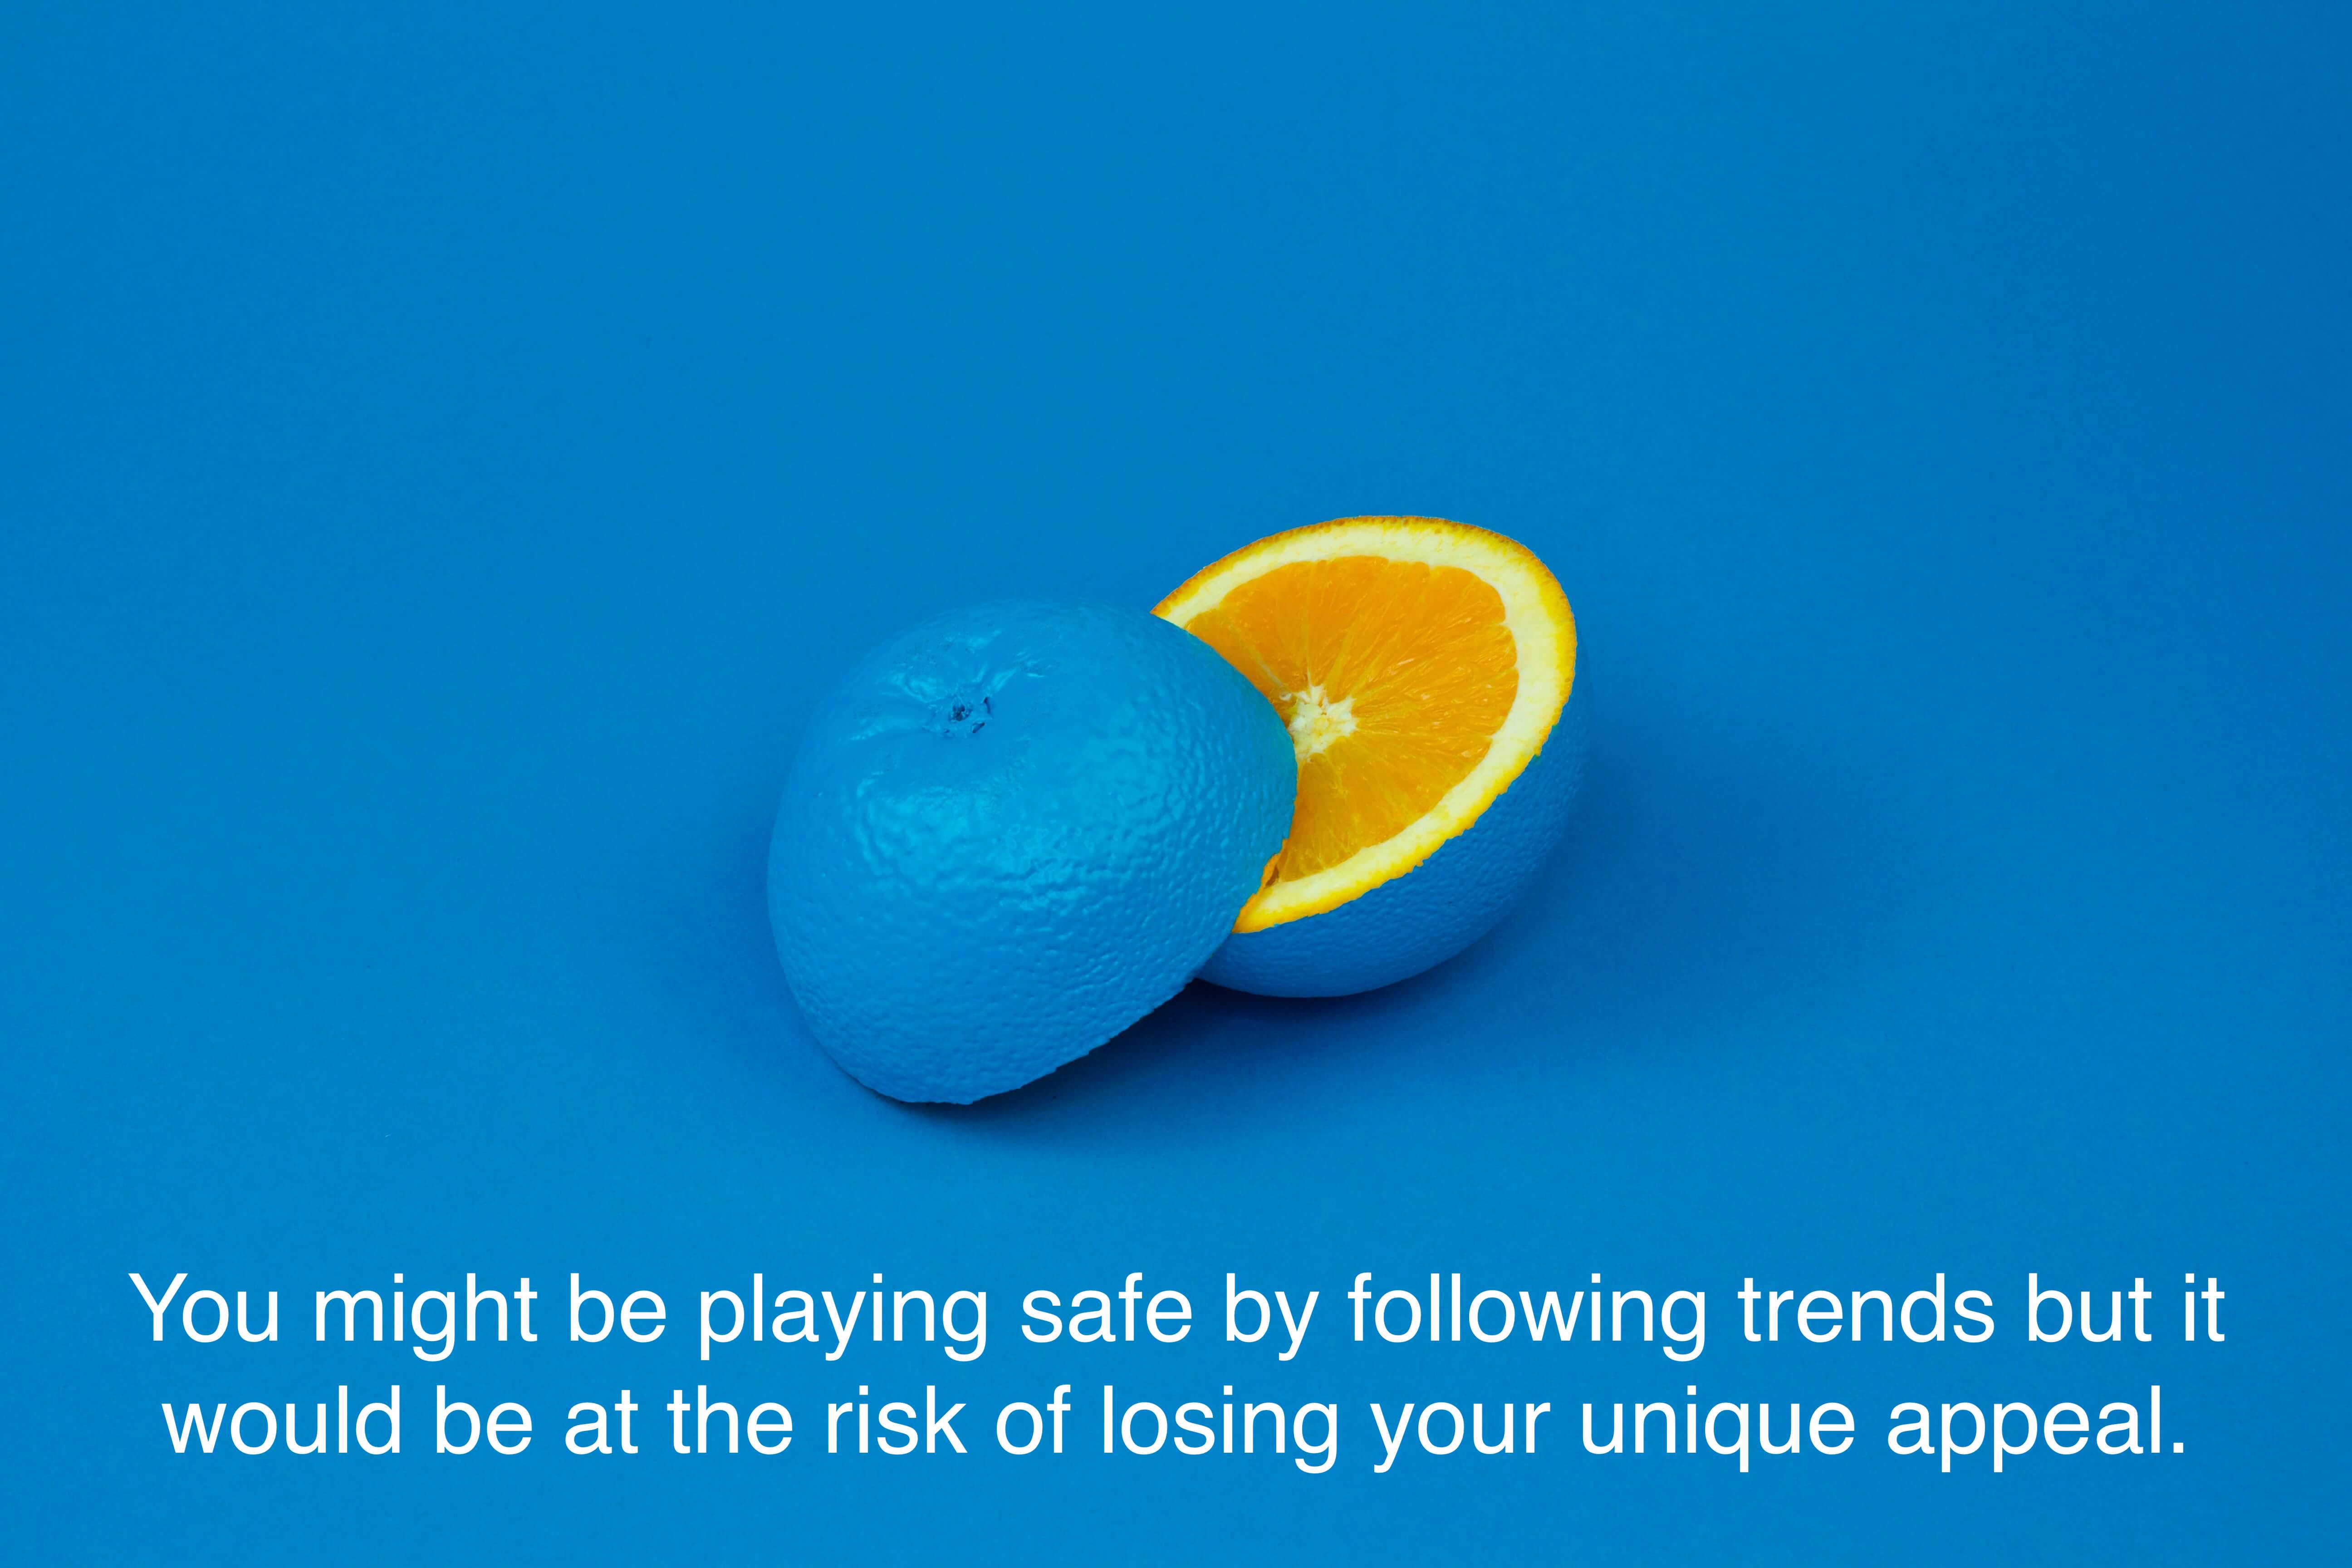 You might be playing safe by following trends but you are at the risk of losing your unique appeal.